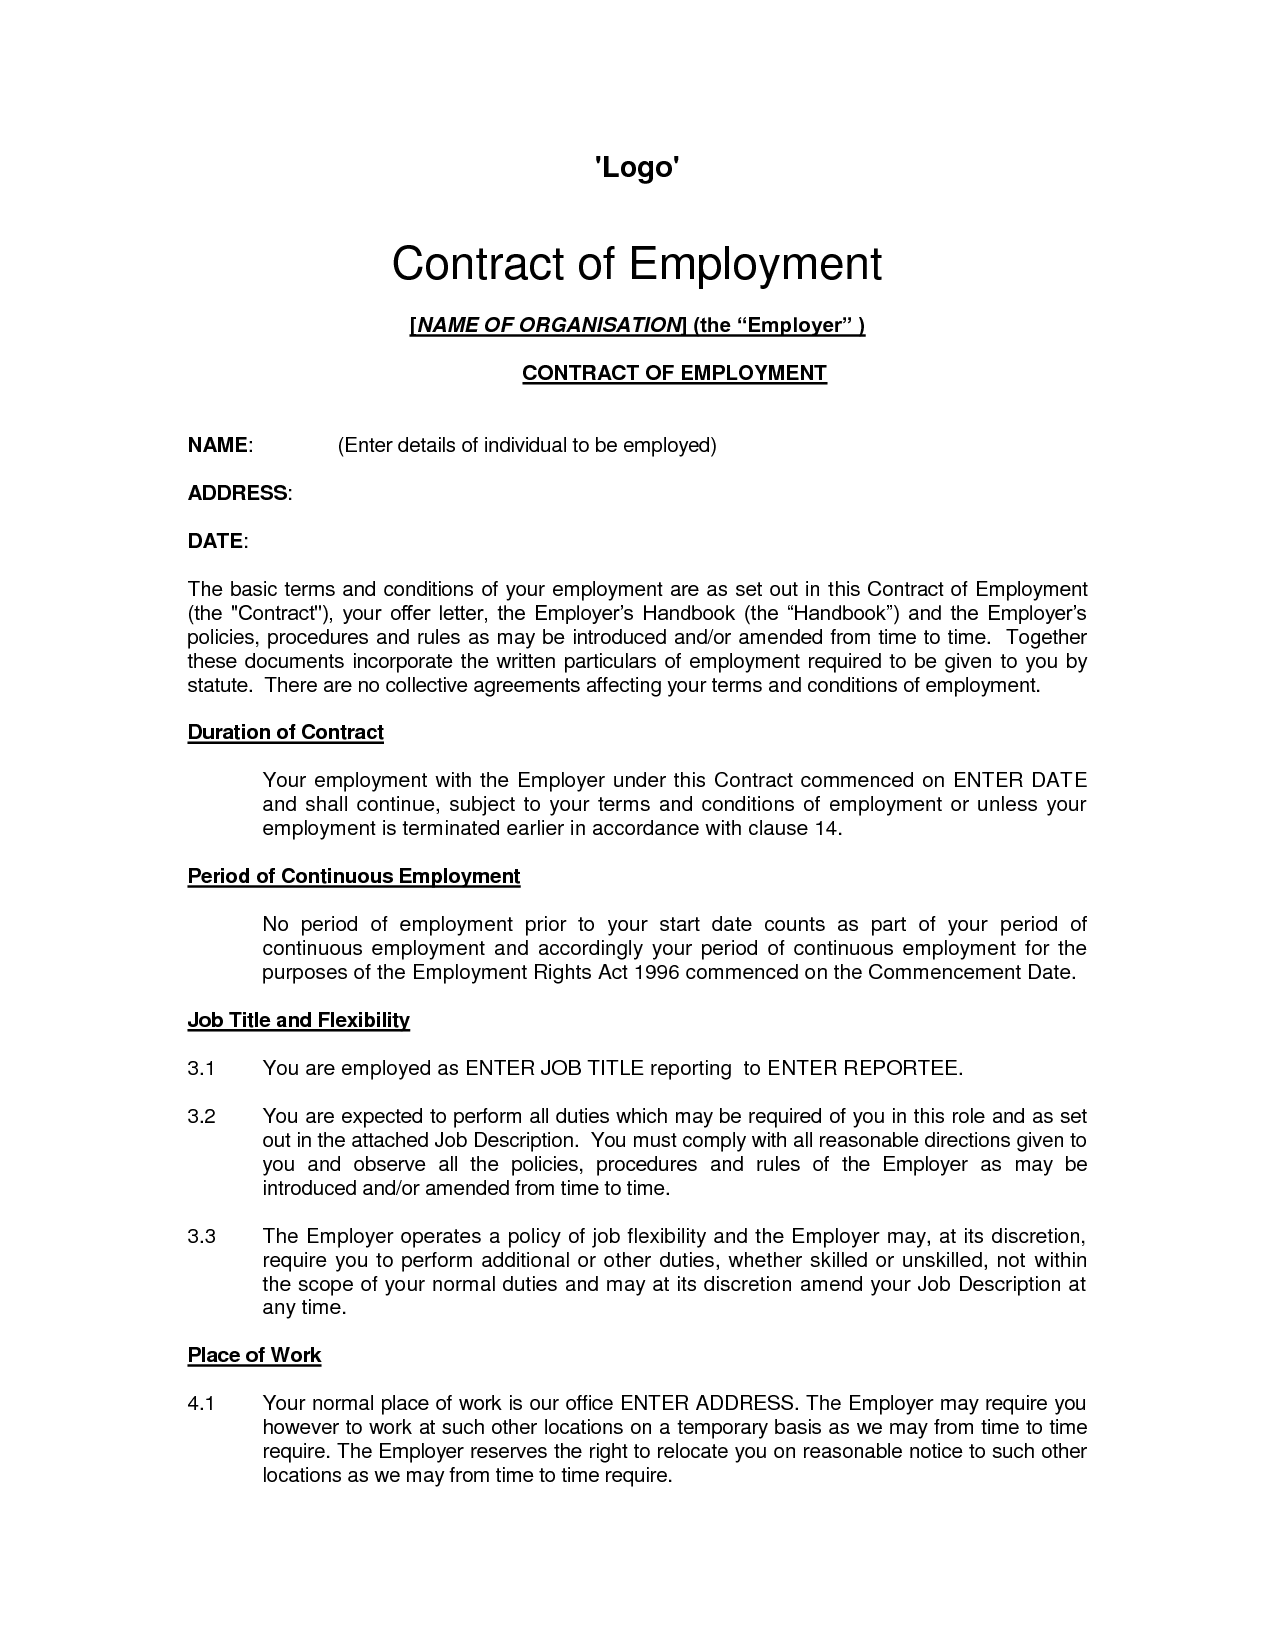 Simple employment contract sample vatozozdevelopment simple employment contract sample flashek Image collections